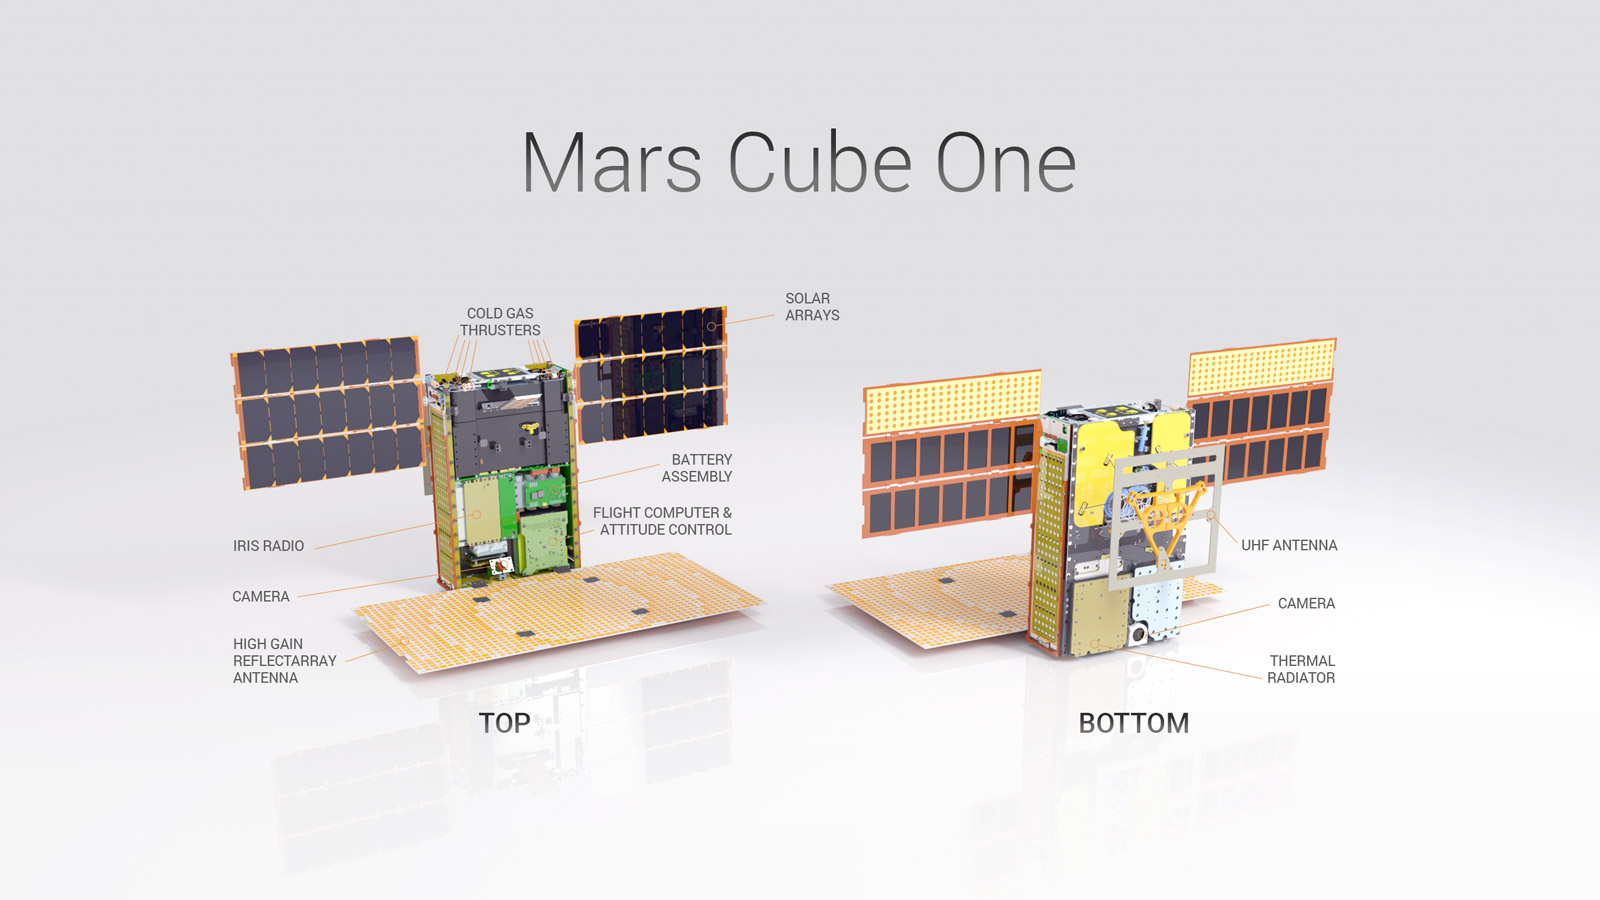 Mars Cube One in Detail